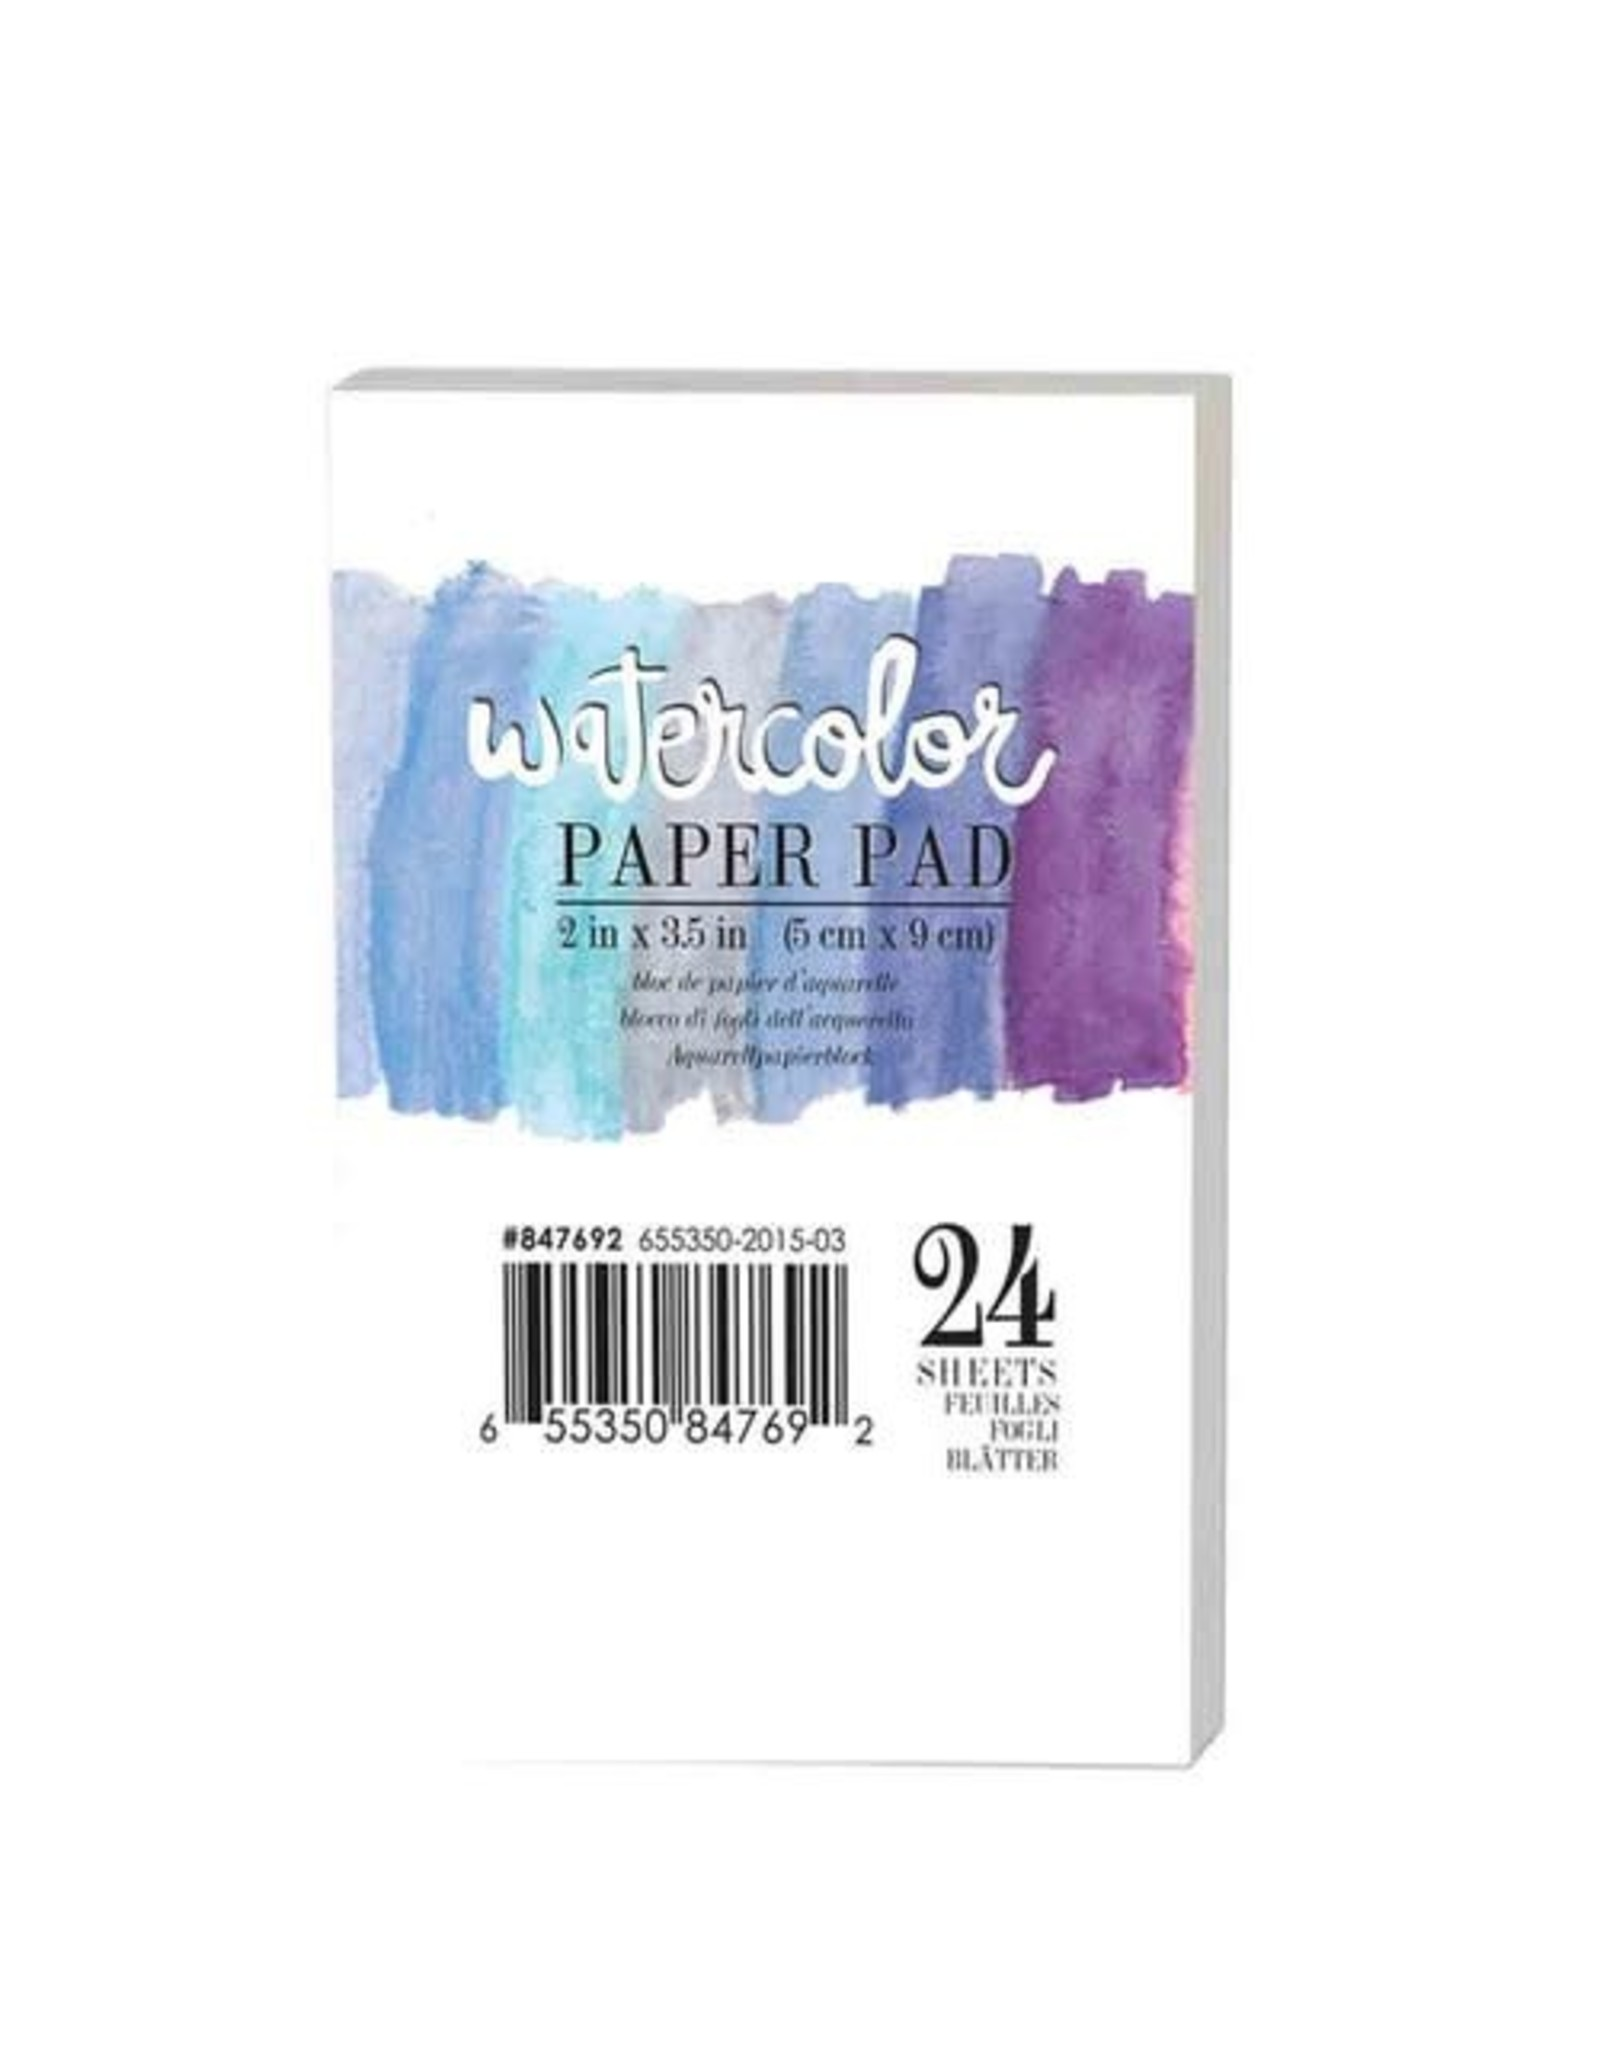 Watercolor Paper Pad - 2 x 3.5